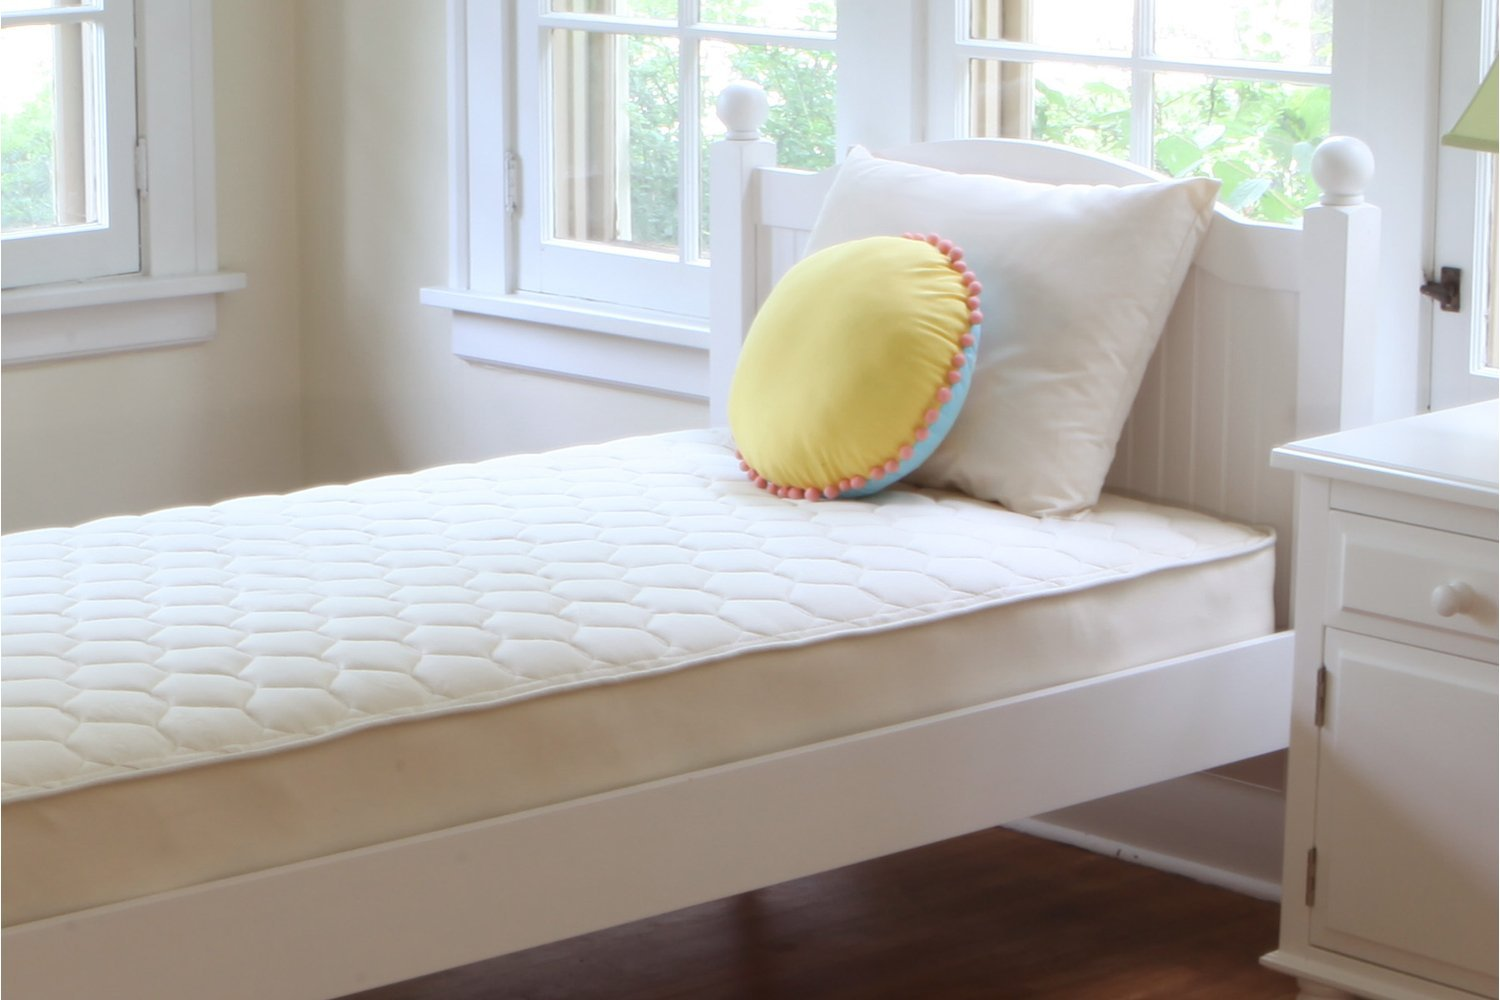 Naturepedic Organic Cotton 1-Sided Quilted Mattress - Full